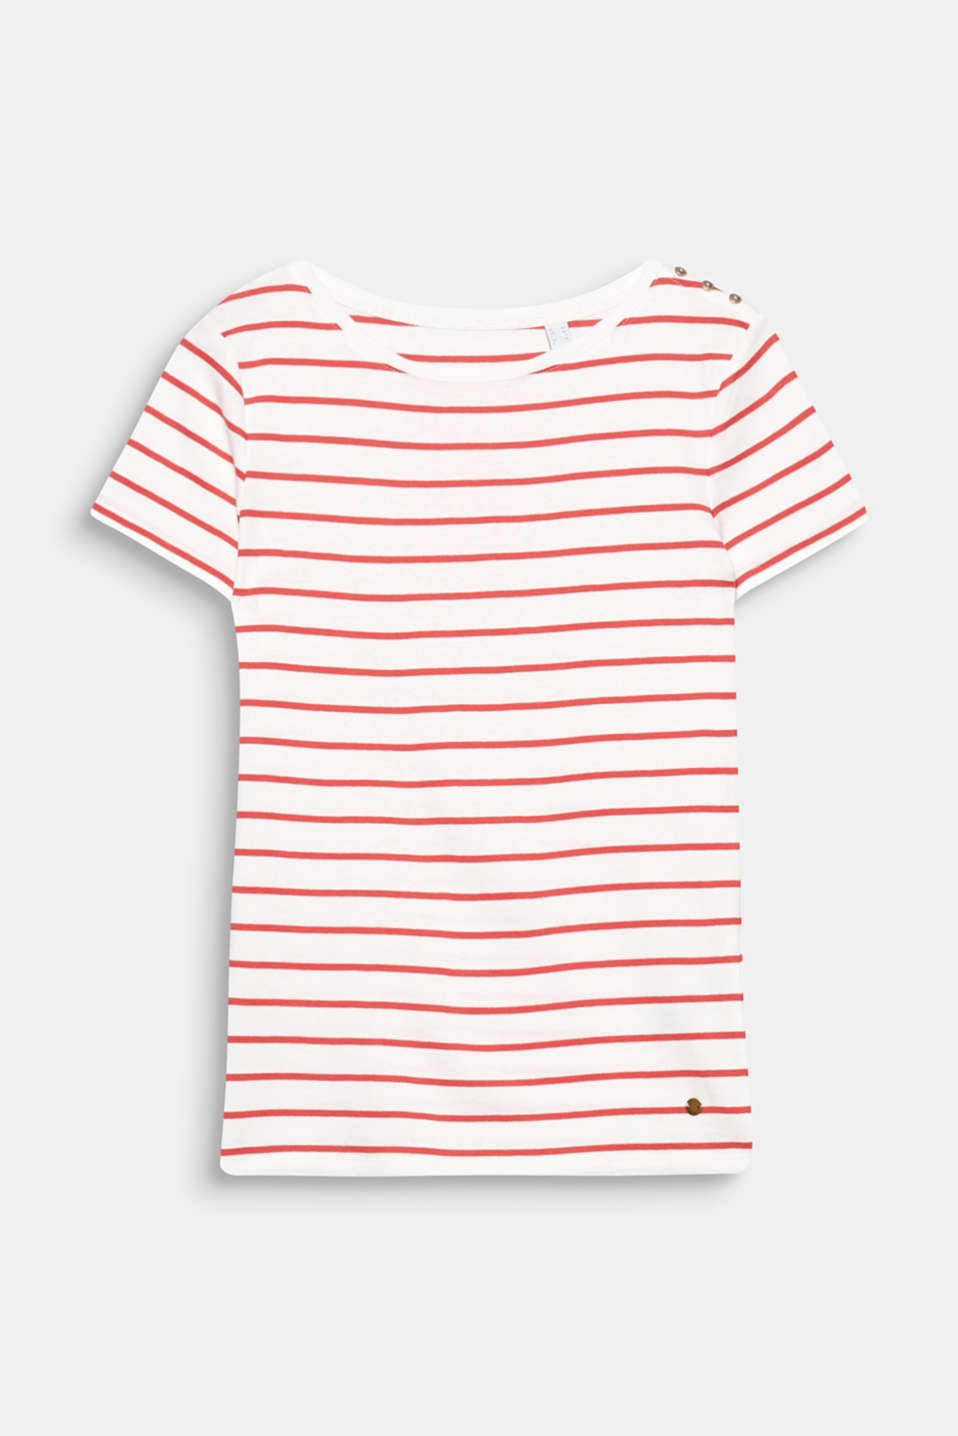 This T-shirt is a super soft, sporty, striped fashionable basic with decorative shoulder buttons!